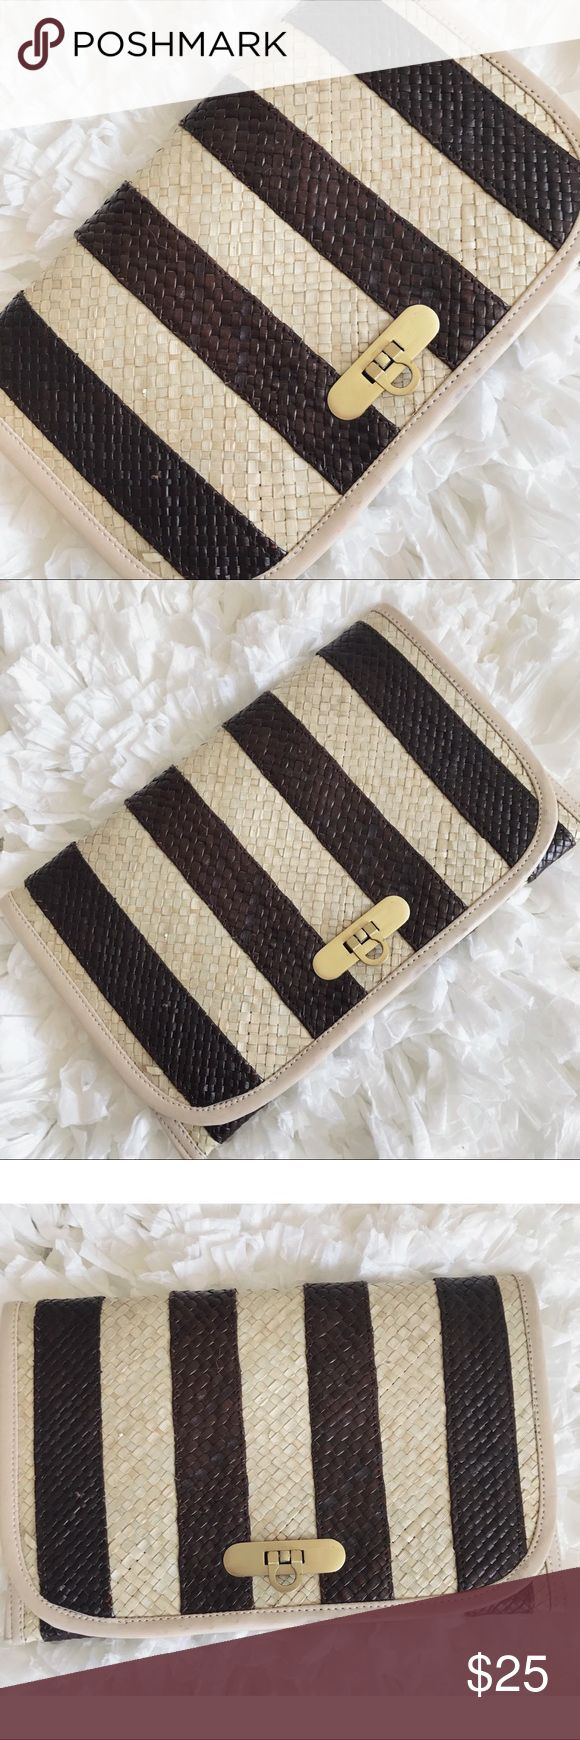 "Vintage Straw Striped Clutch Vintage, cream/dark brown, striped clutch with gold-tone front closure. Features cream, faux leather trim around edges of bag. In great condition. There are a few minor marks on the front trim (see photos). The straw surface is in excellent condition (no tears/snags/marks). Interior in excellent condition. 11""L x 7""H x 1/2""W. Photos are included of any imperfections. I only sell vintage in good condition. Please ask questions/request additional photos prior to…"